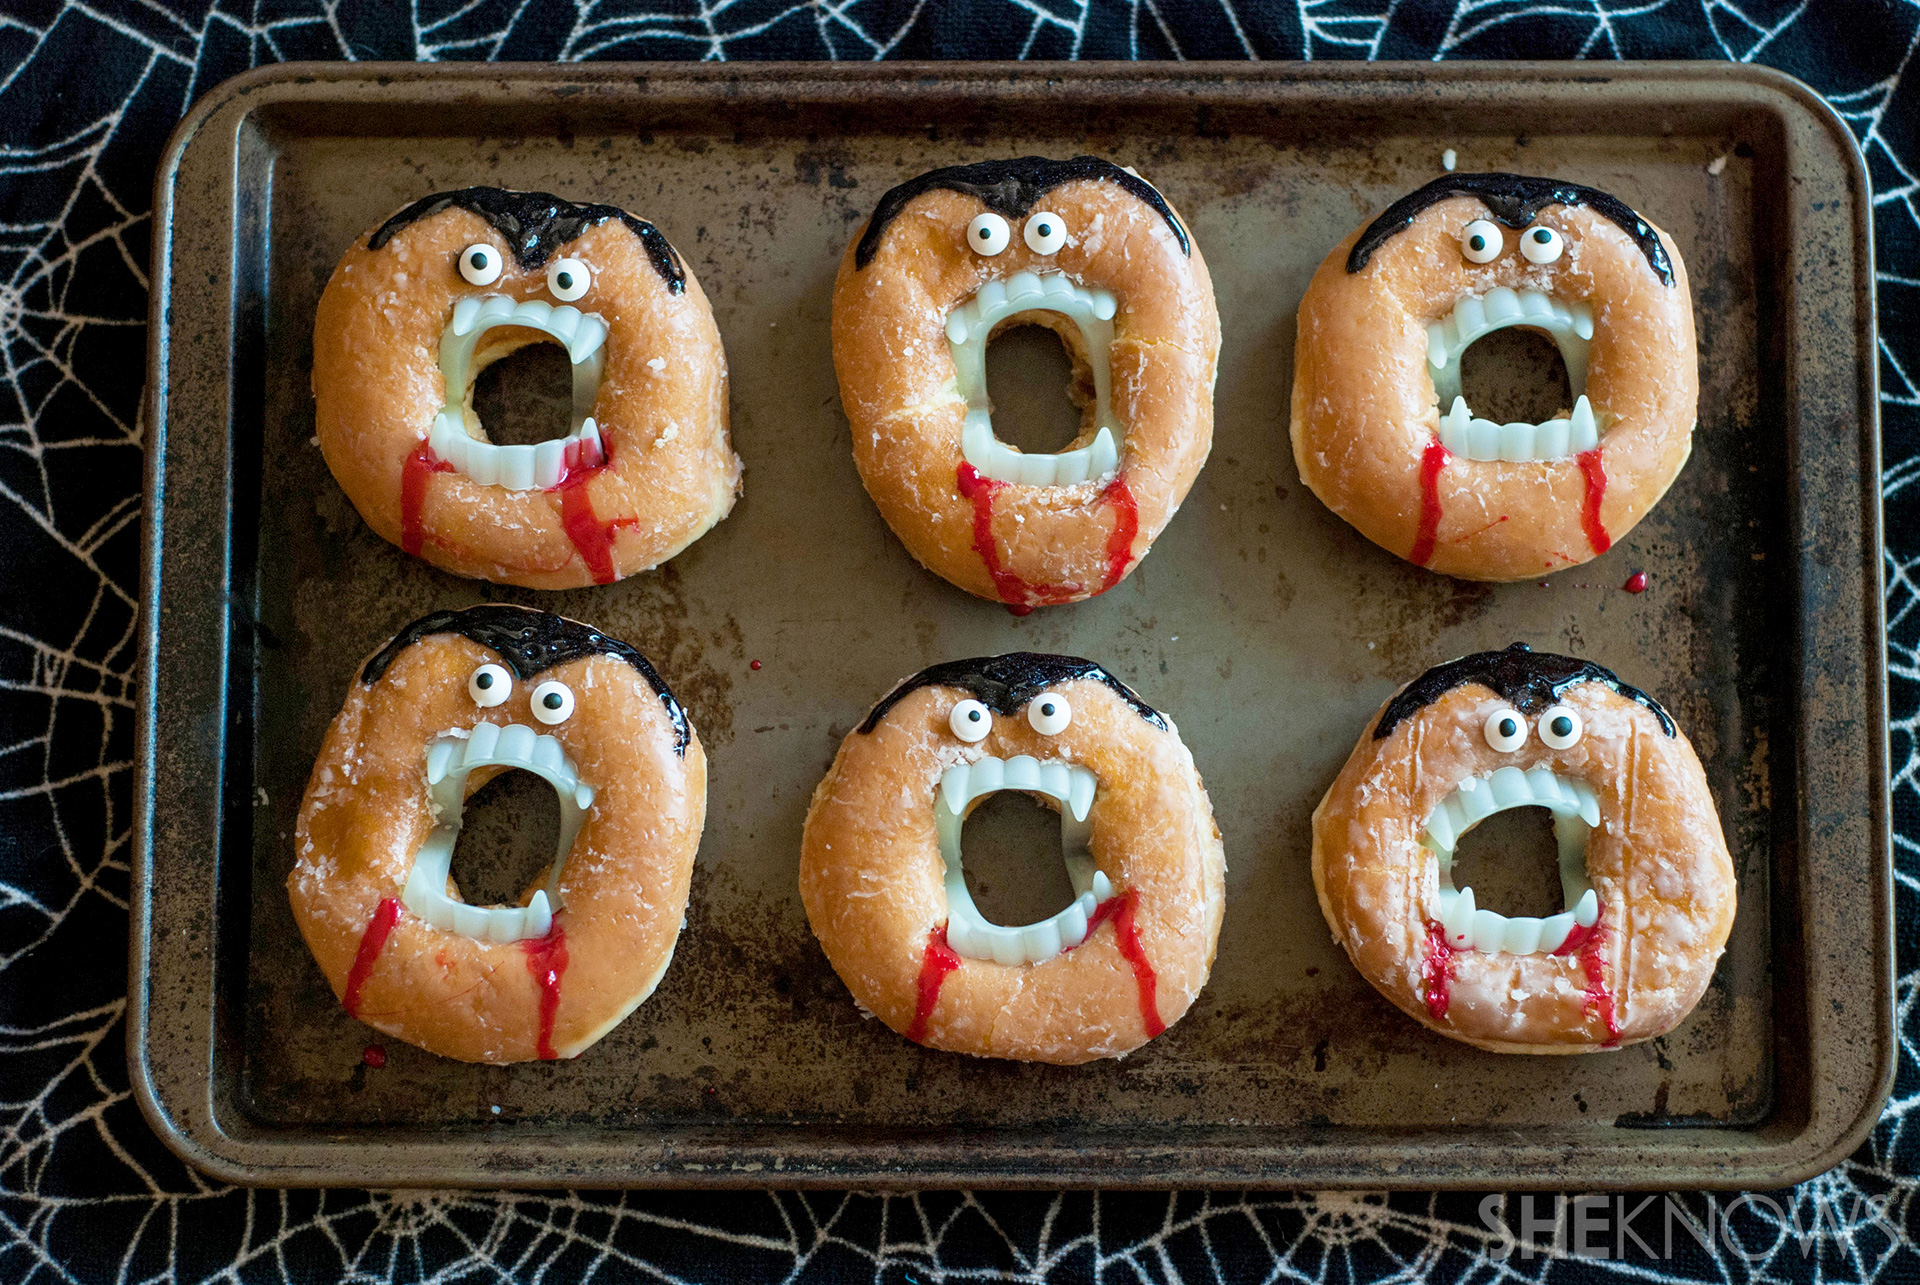 It S Time For Hilarious No Bake Vampire Doughnuts To Rise Yet Again